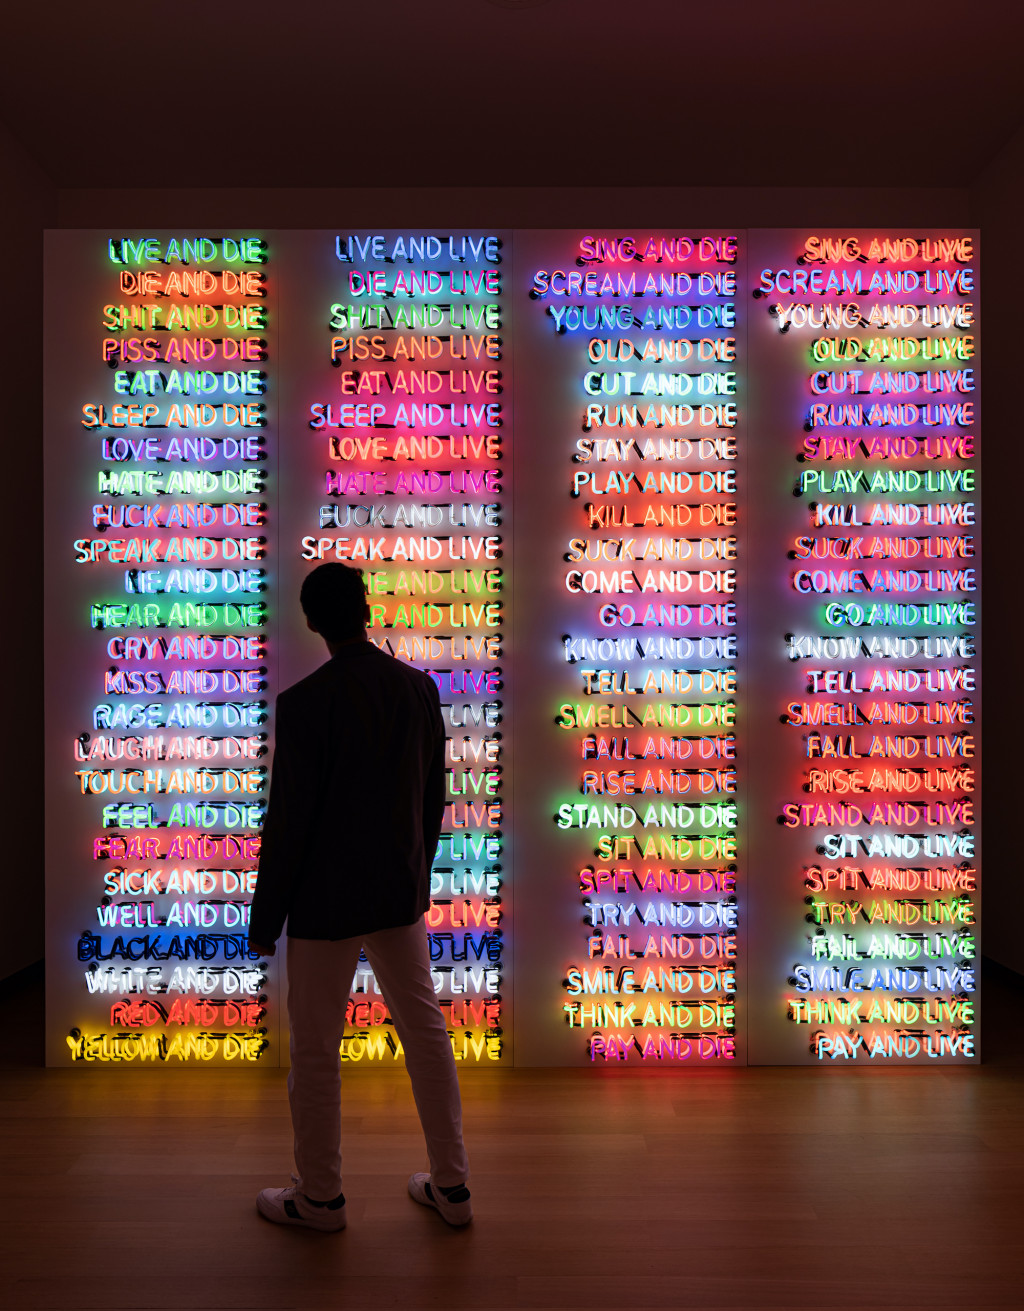 Installation view. Bruce Nauman, One Hundred Live and Die, 1984, coll. Benesse Holdings, Inc./Benesse House Museum, Naoshima. Photo: Peter Tijhuis © 2021 Bruce Nauman / Pictoright Amsterdam